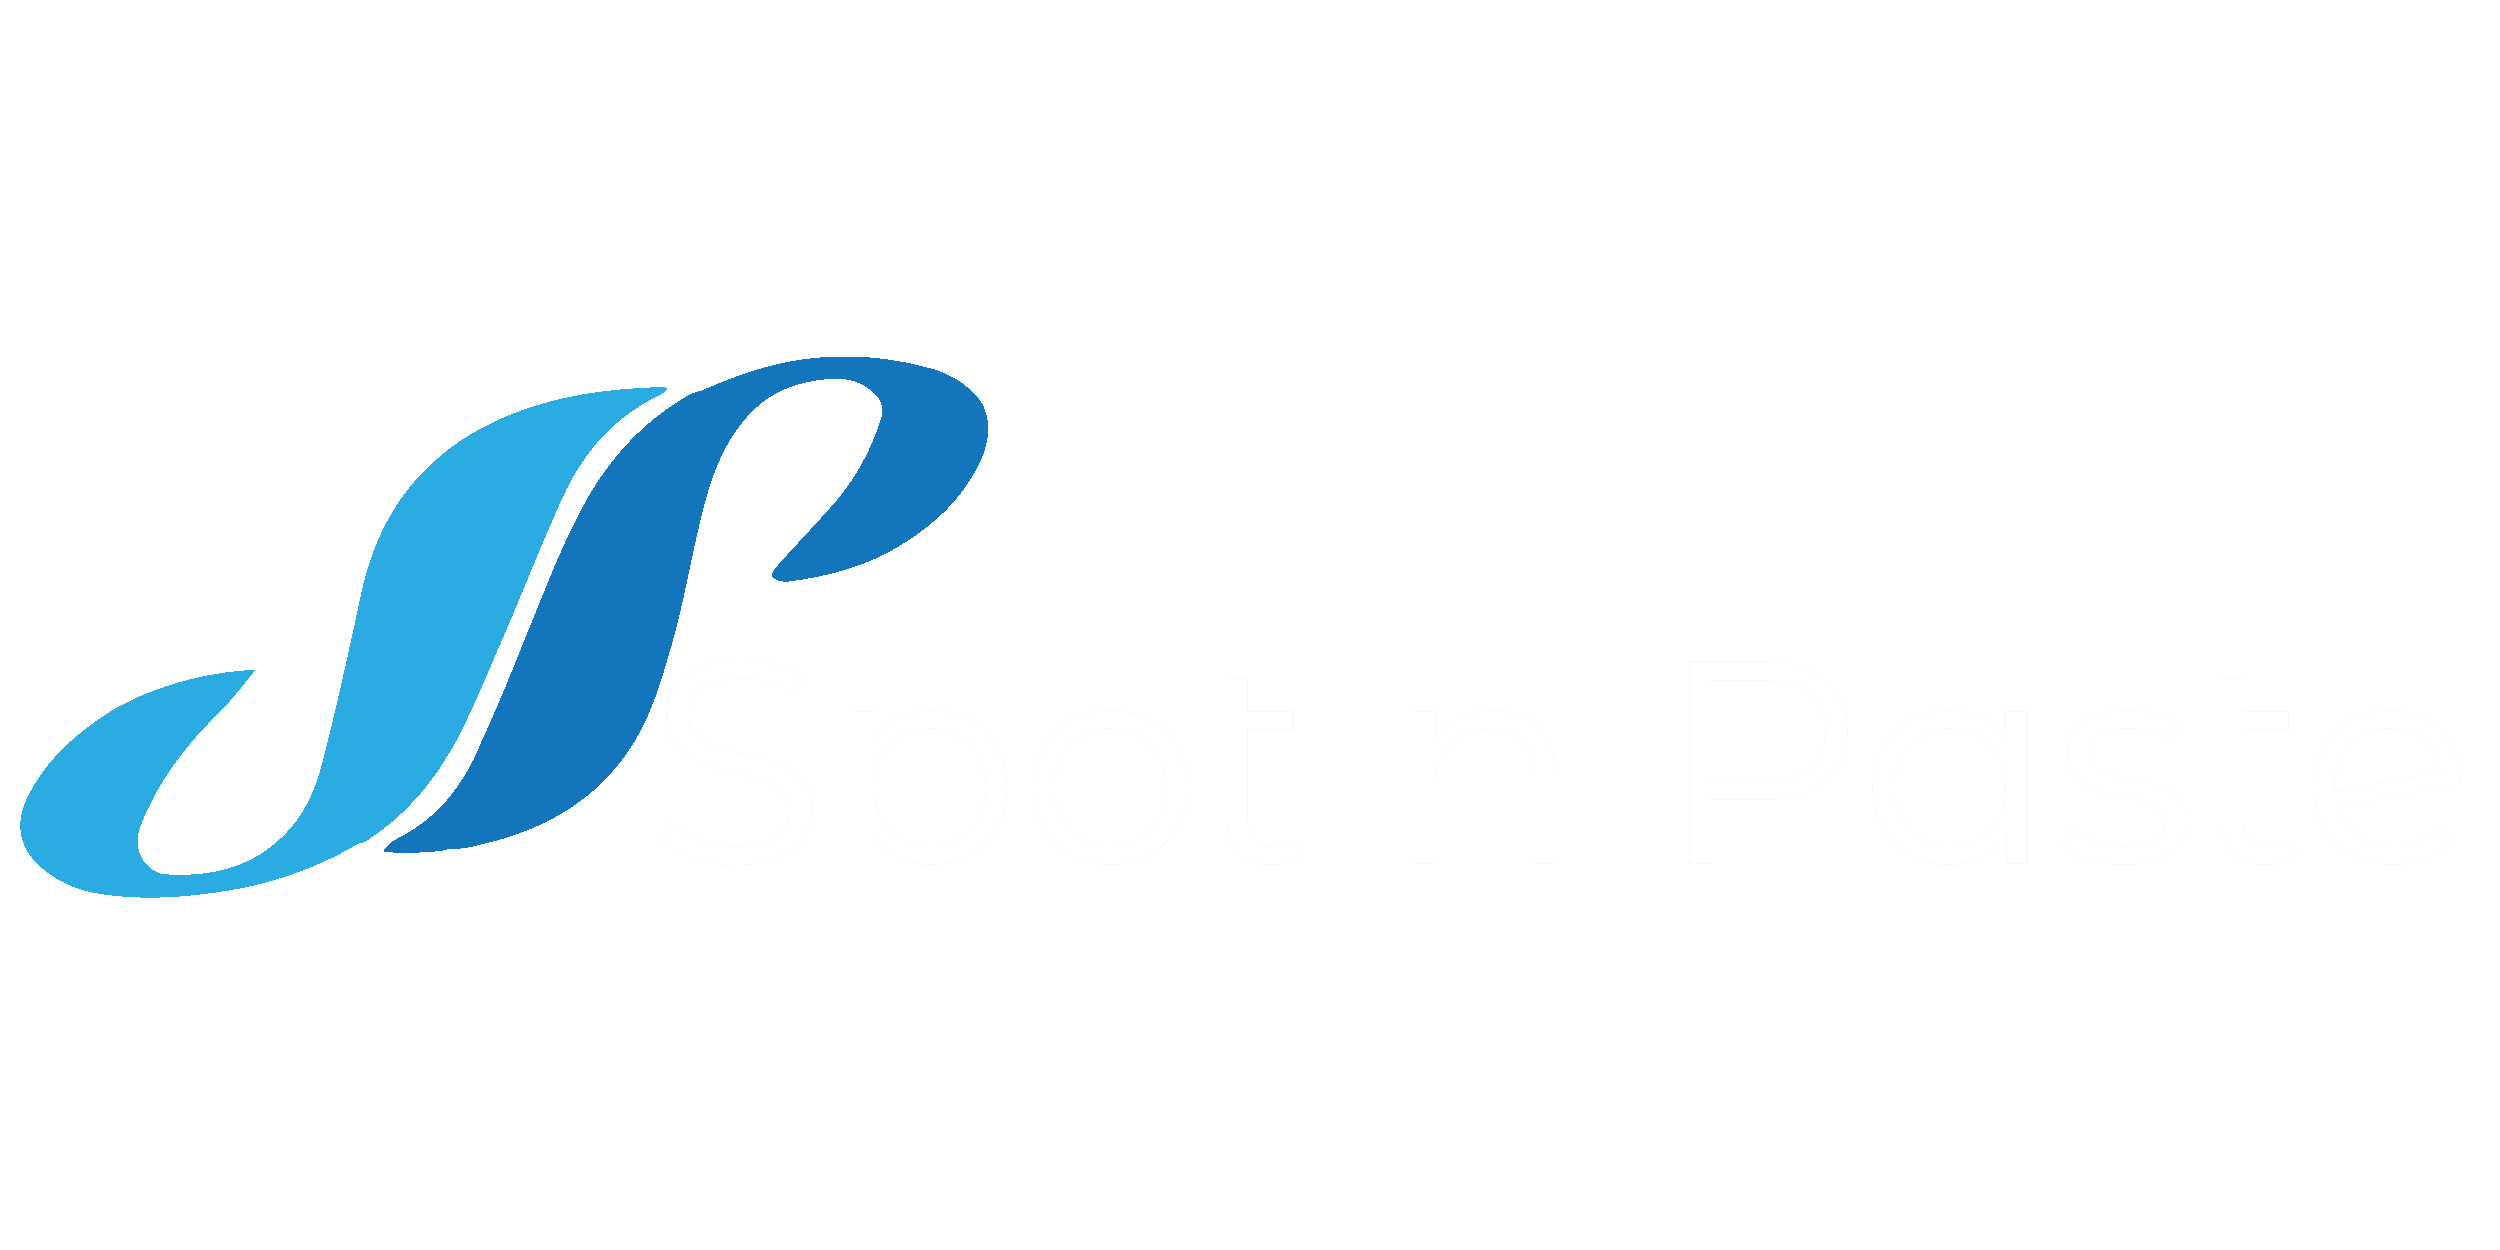 Spot N Paste Dropship Semi Autoorder Tool That Works With